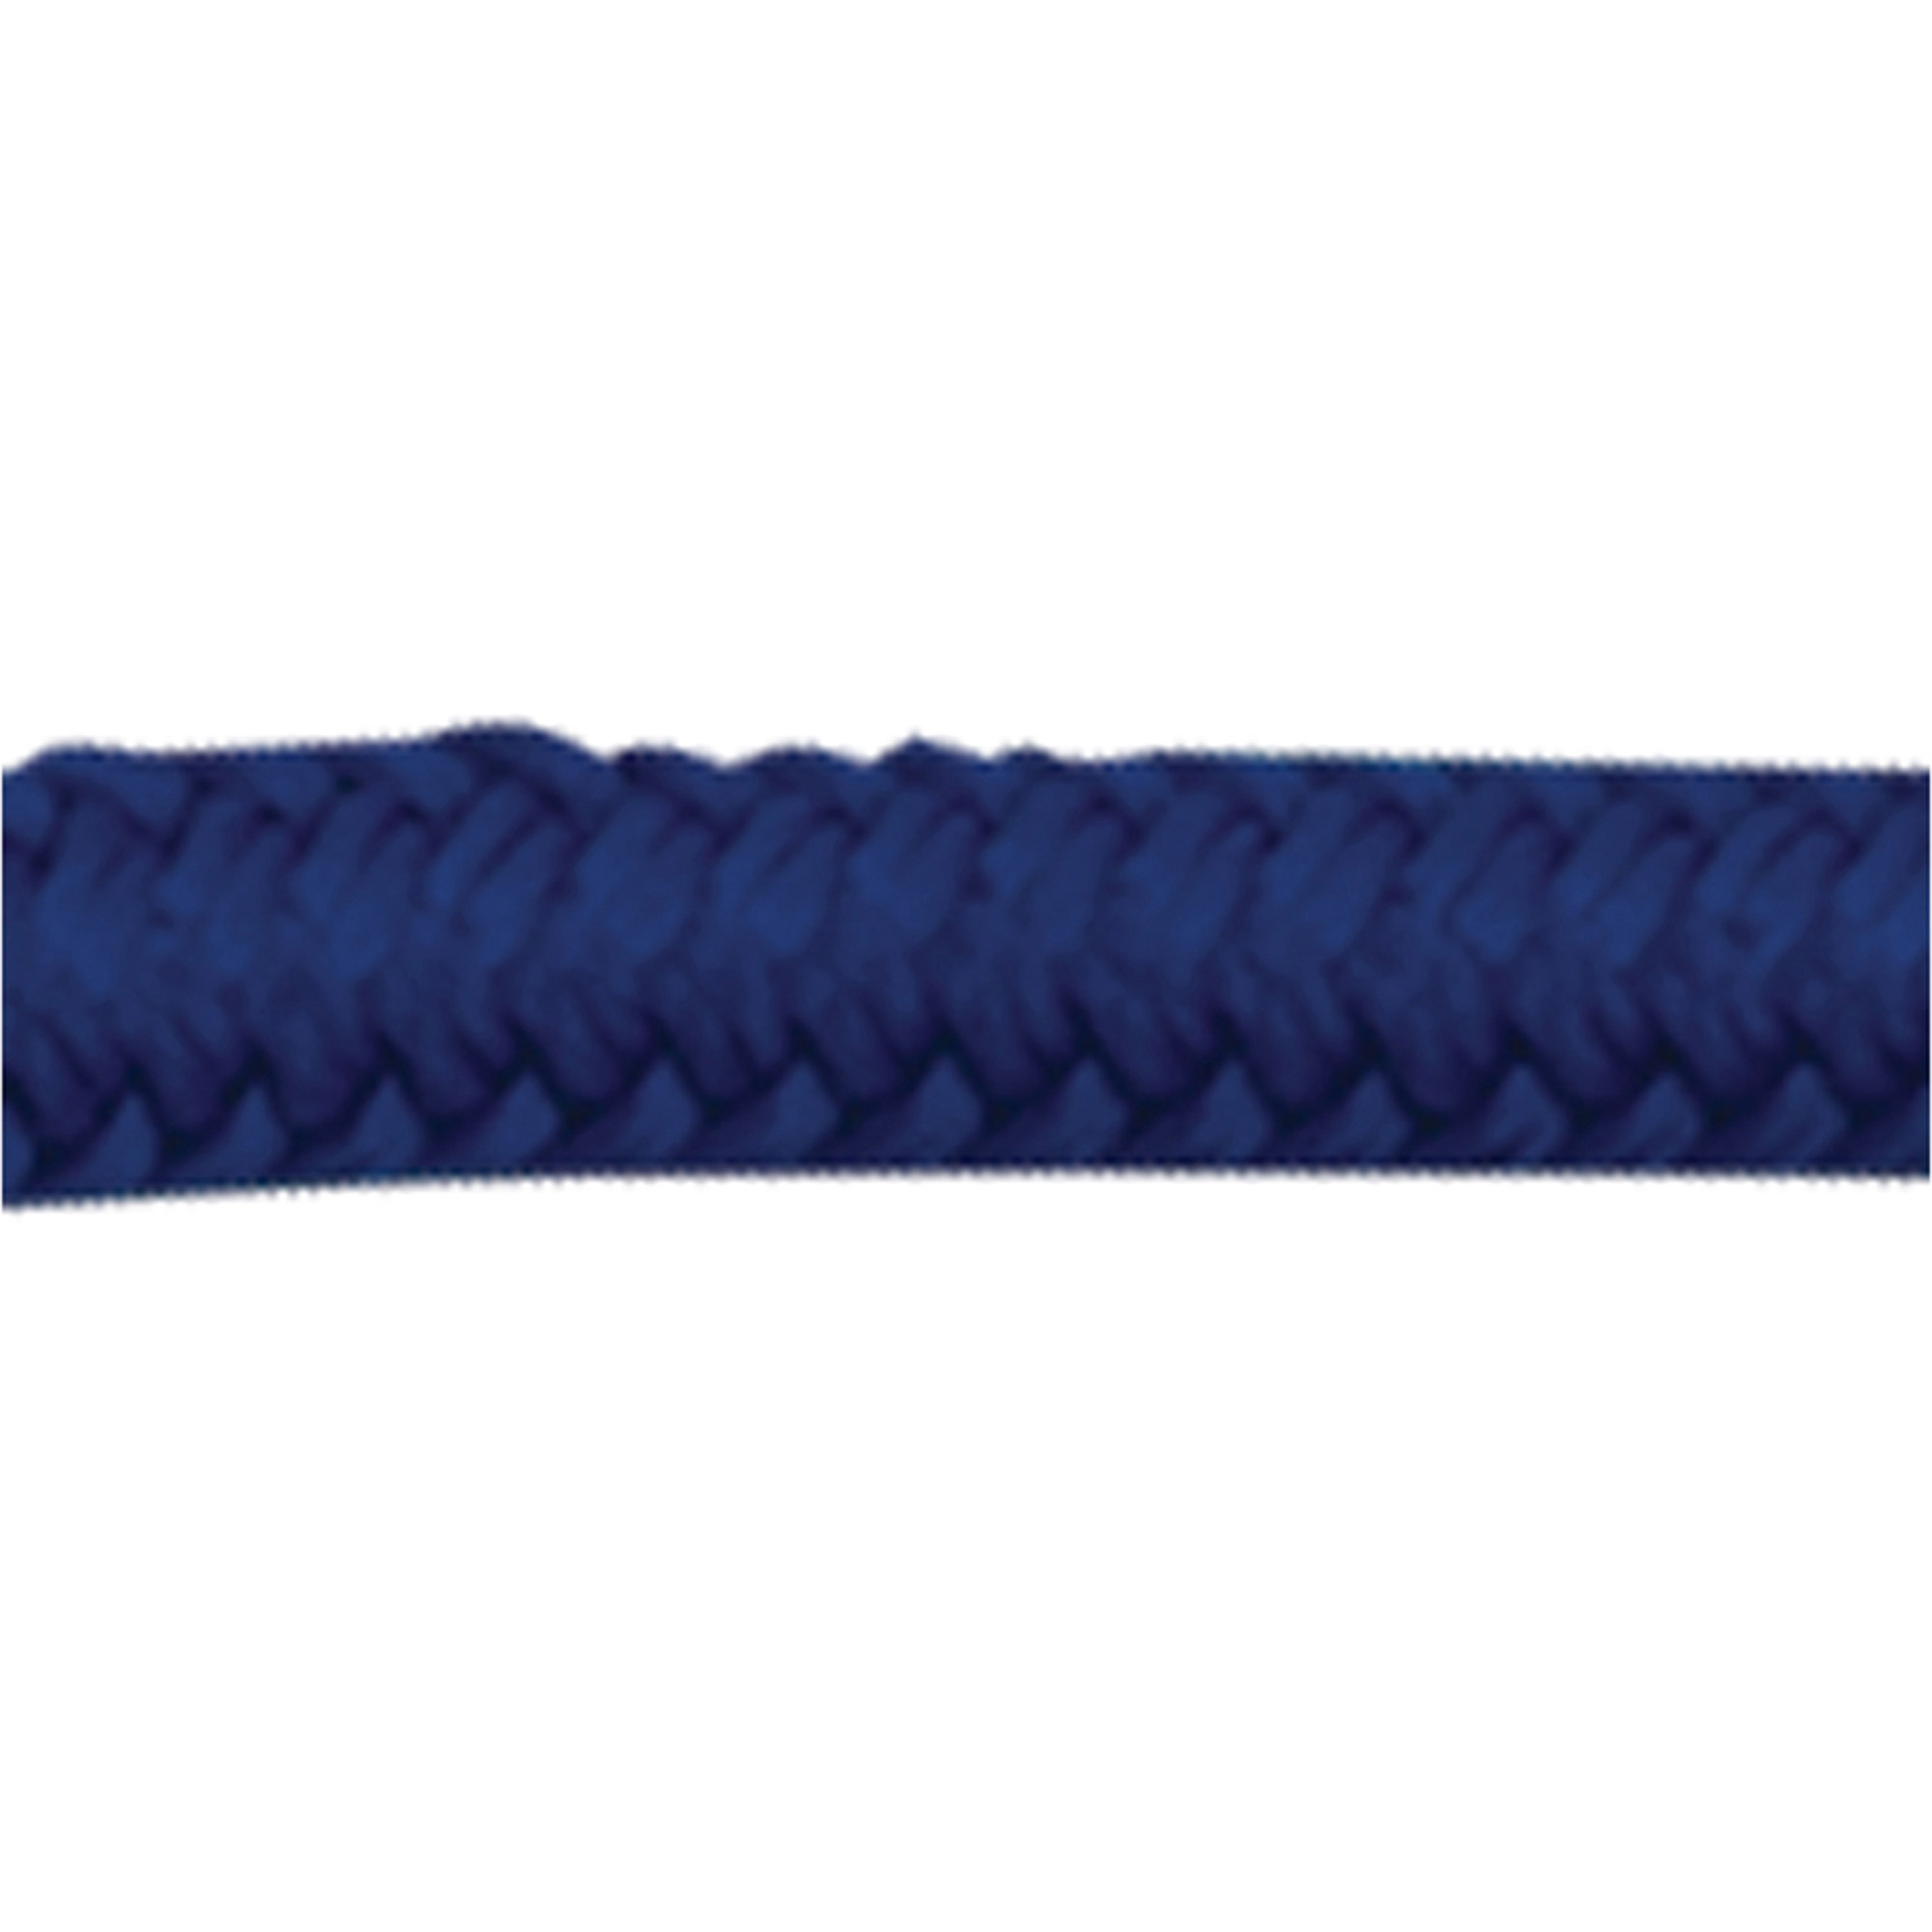 "Sea Dog Dock Line, Double Braided Nylon, 1 2"" x 15', Navy by"